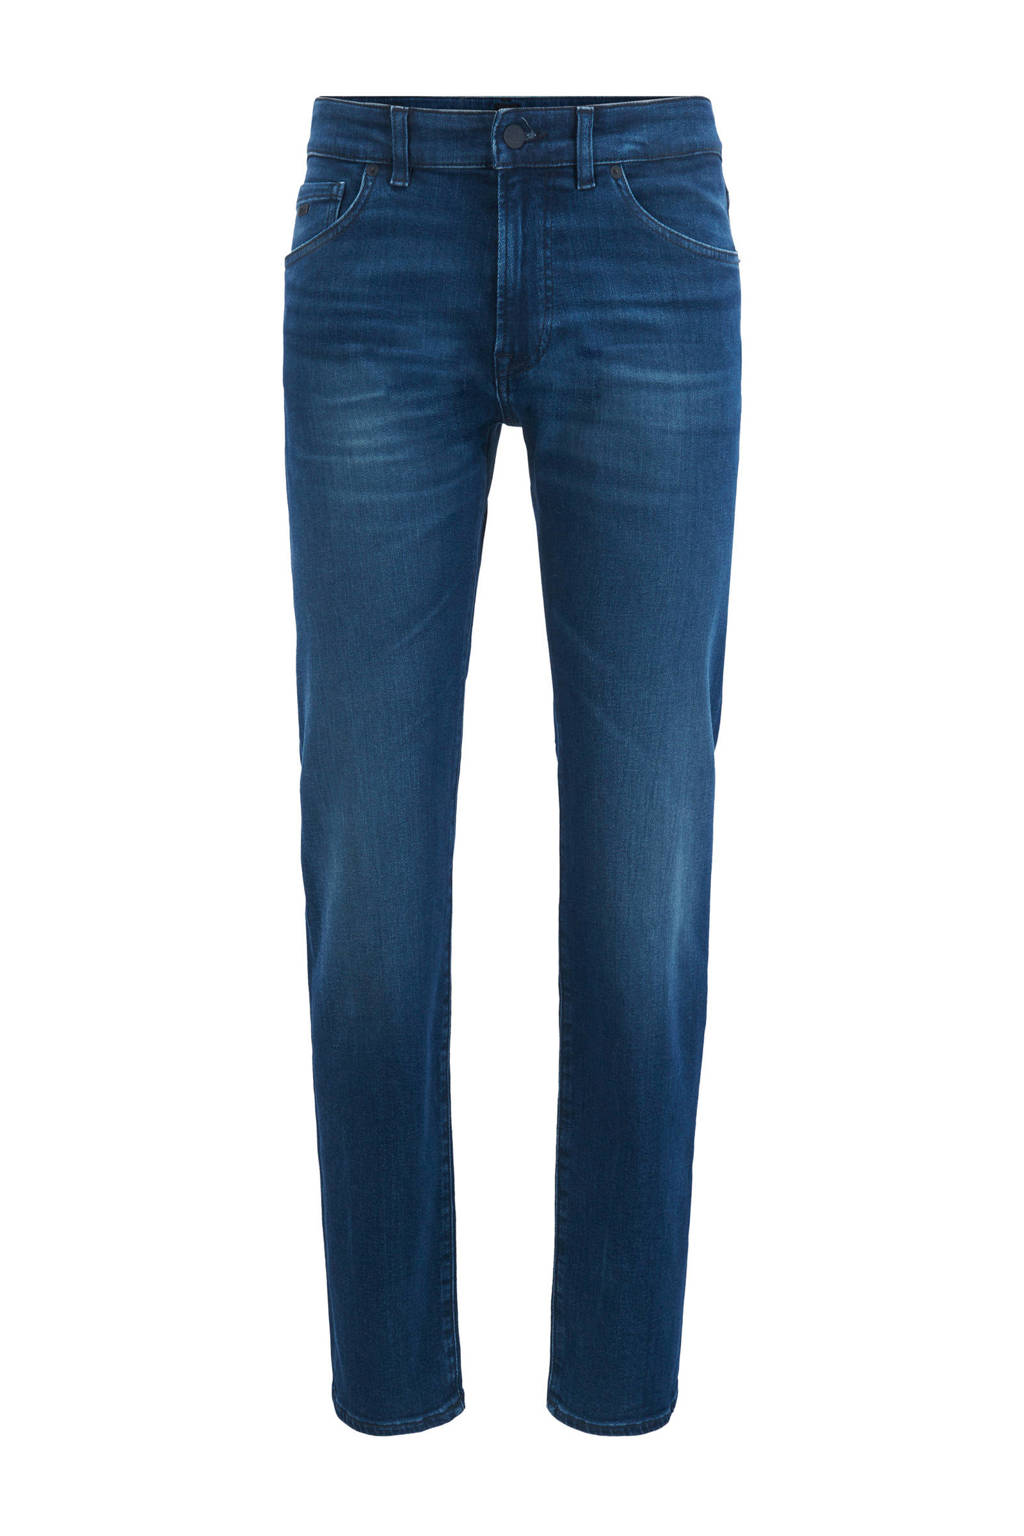 BOSS Casual regular fit jeans Maine BC-L-P 414 navy, 414 Navy